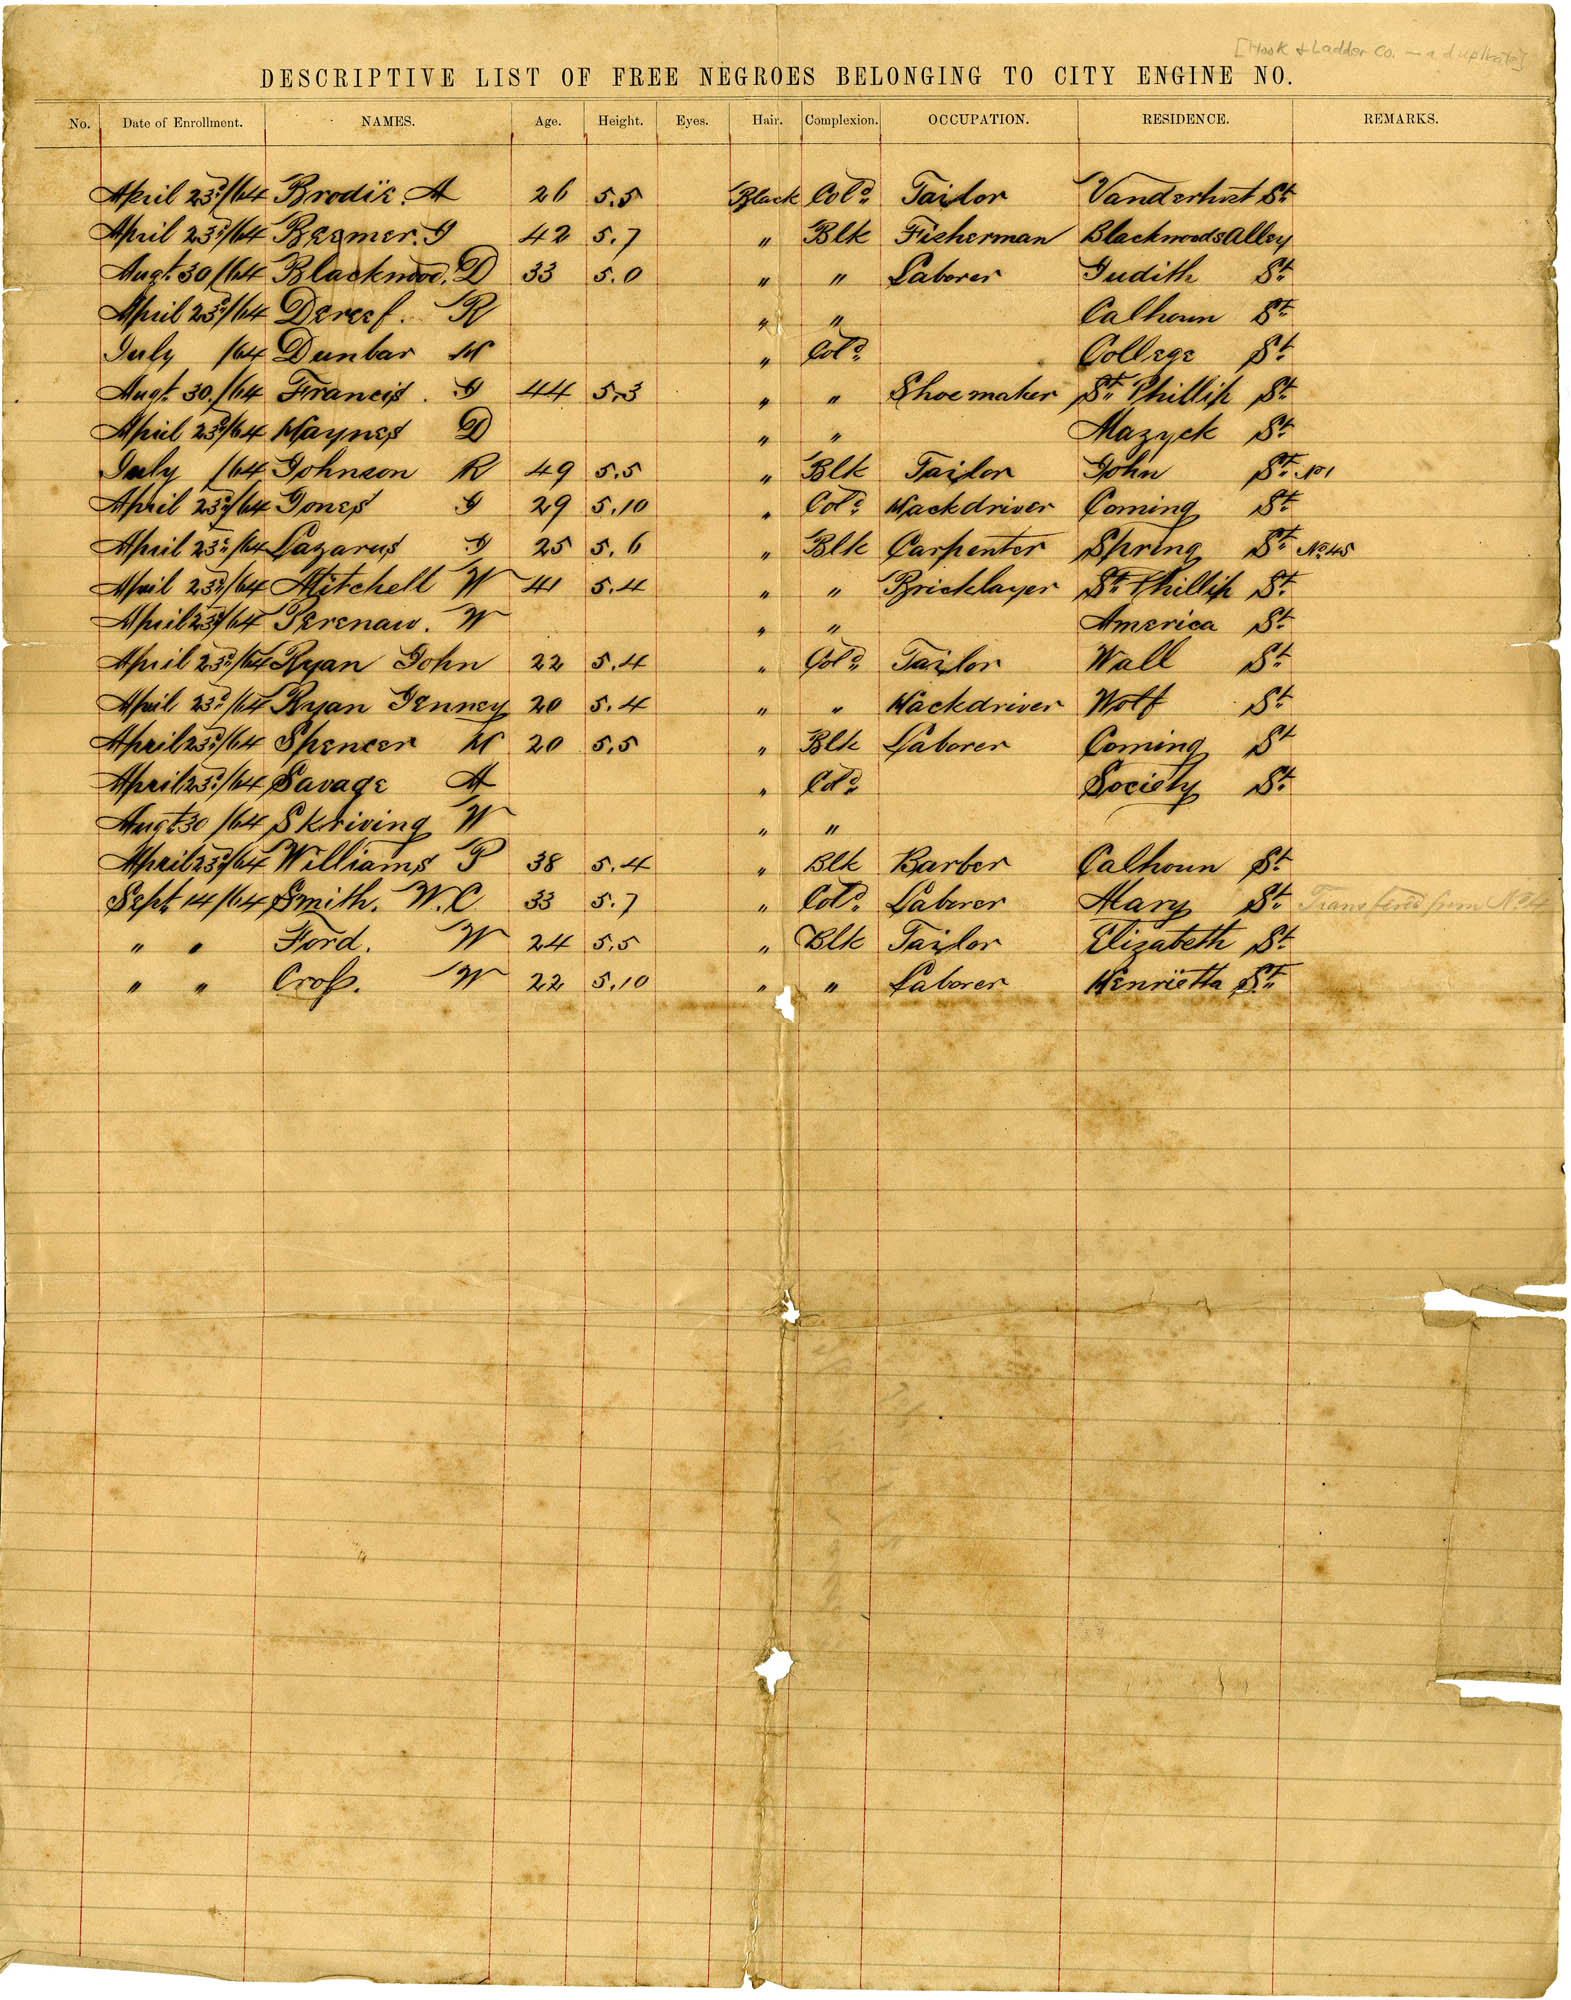 Descriptive List of Free Negroes Belonging to City Hook & Ladder Co. [Copy 2]